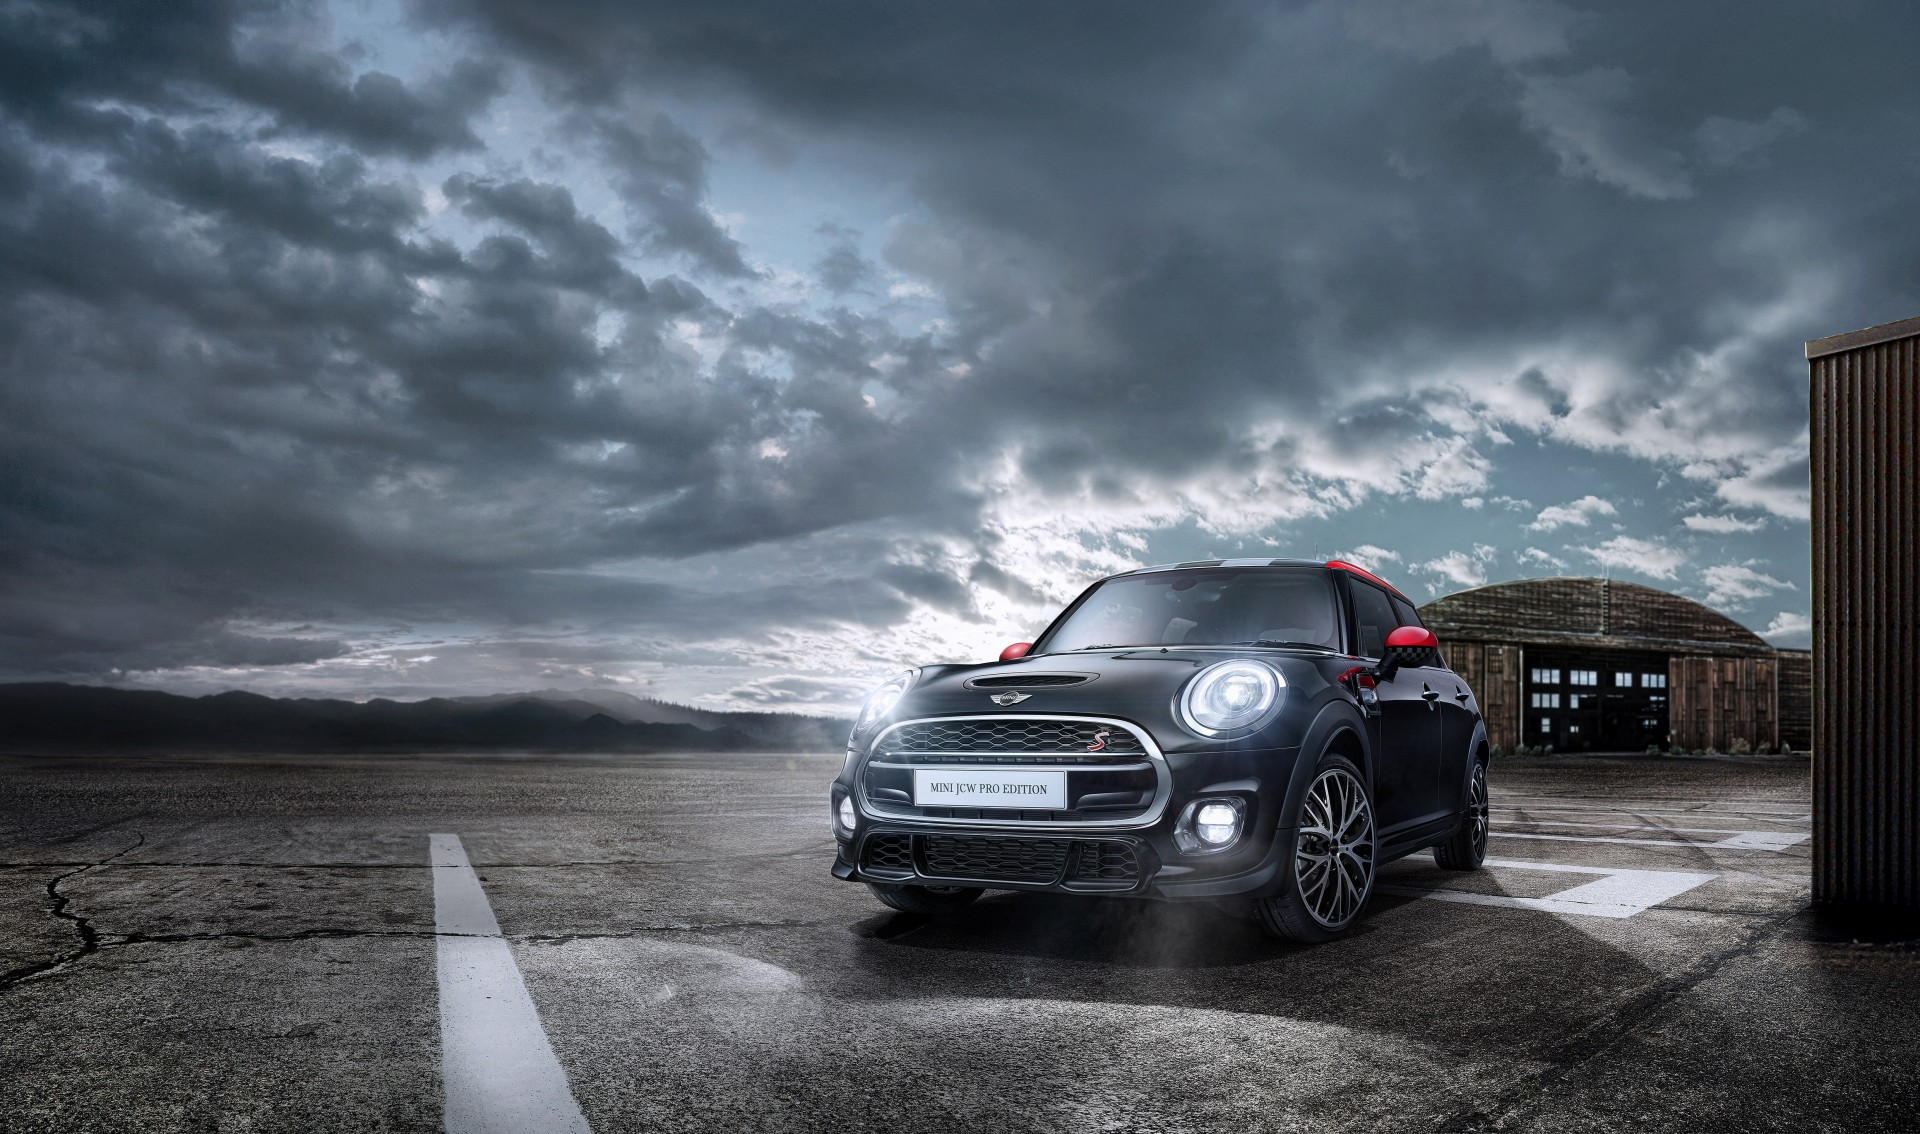 Mini Msia Introduces Mini Jcw Pro Edition Priced At Rm255888